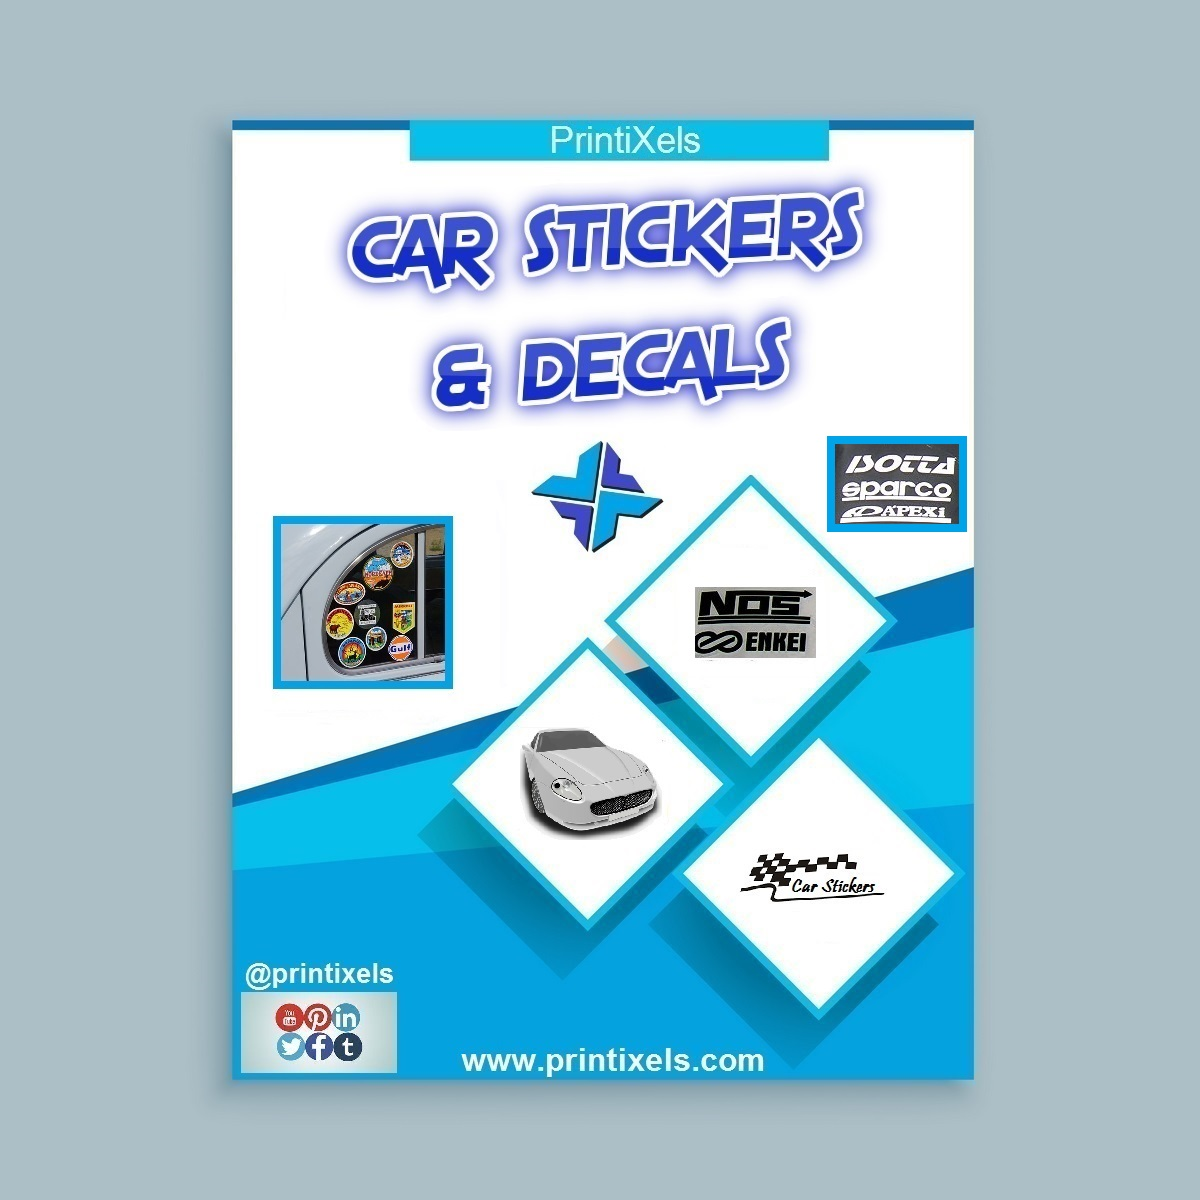 Customized Car Stickers & Decals